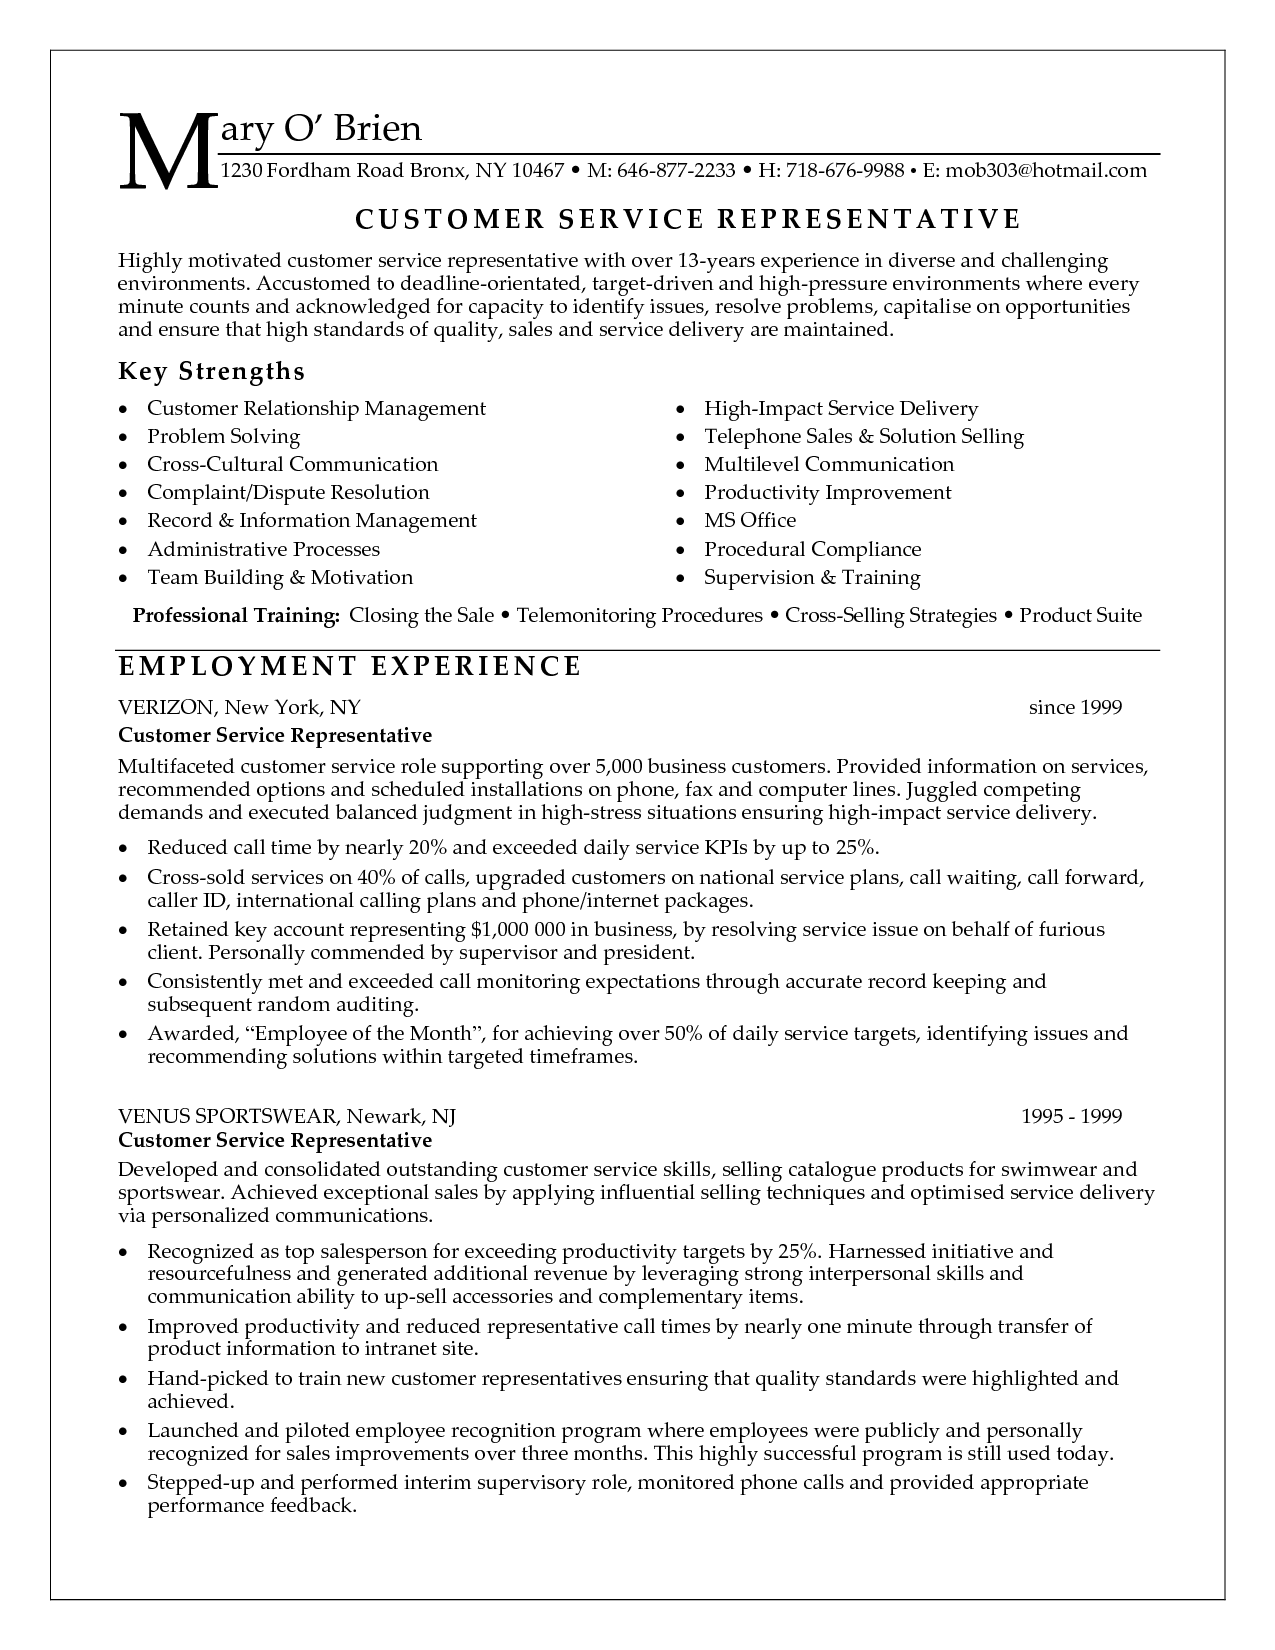 Customer Service Representative Resume - http://www.resumecareer.info/ customer-service-representative-resume/